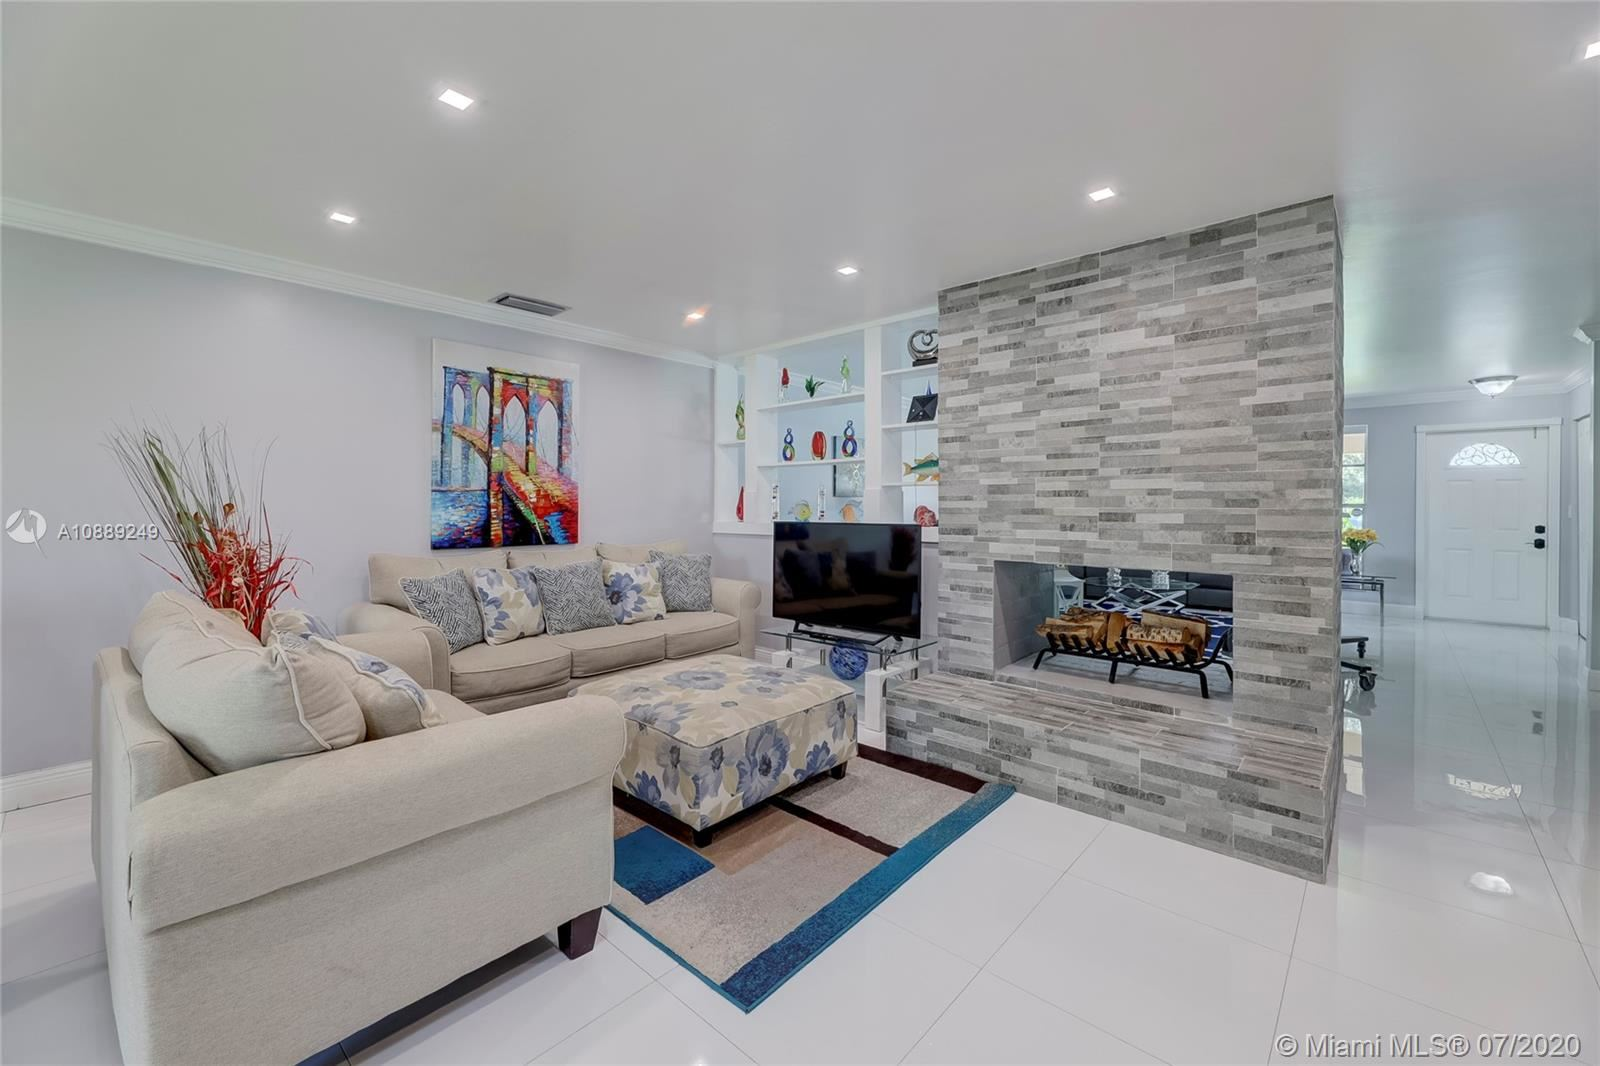 4299 Coral Springs Dr #3A, Coral Springs, FL 33065 - #: A10889249